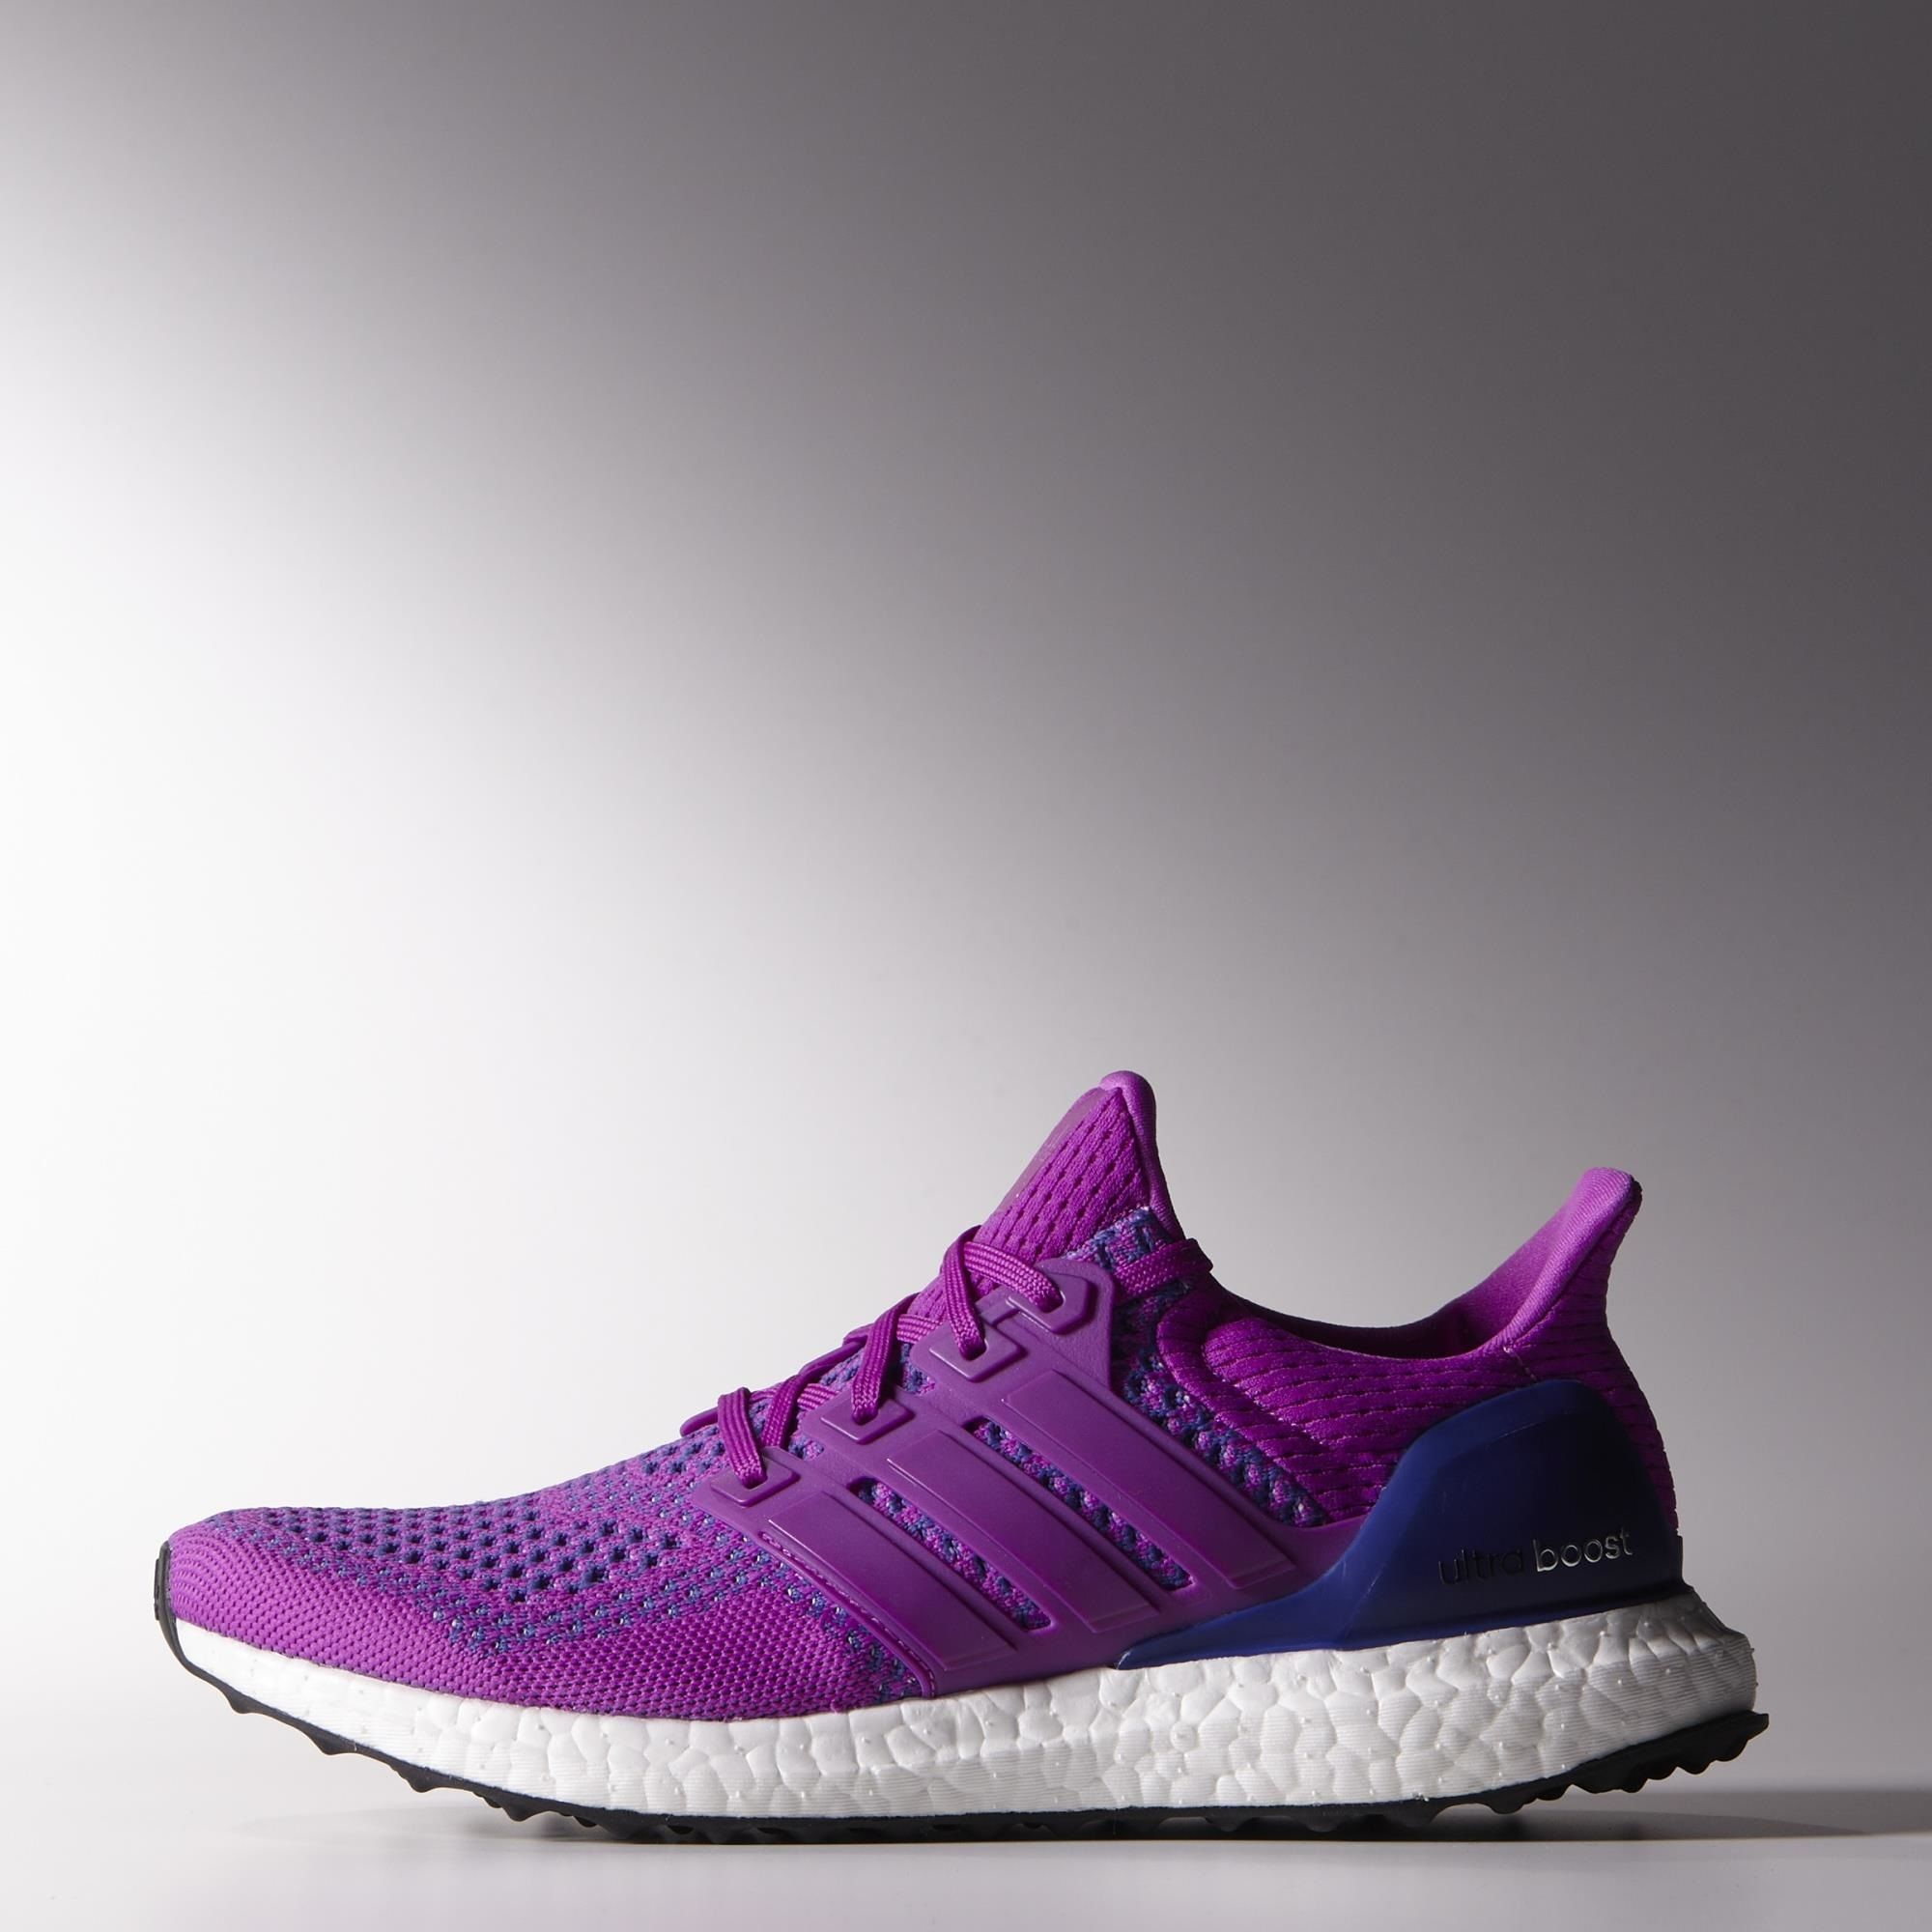 8e8fc30f34dd6 adidas Ultra Boost Shoes - Pink